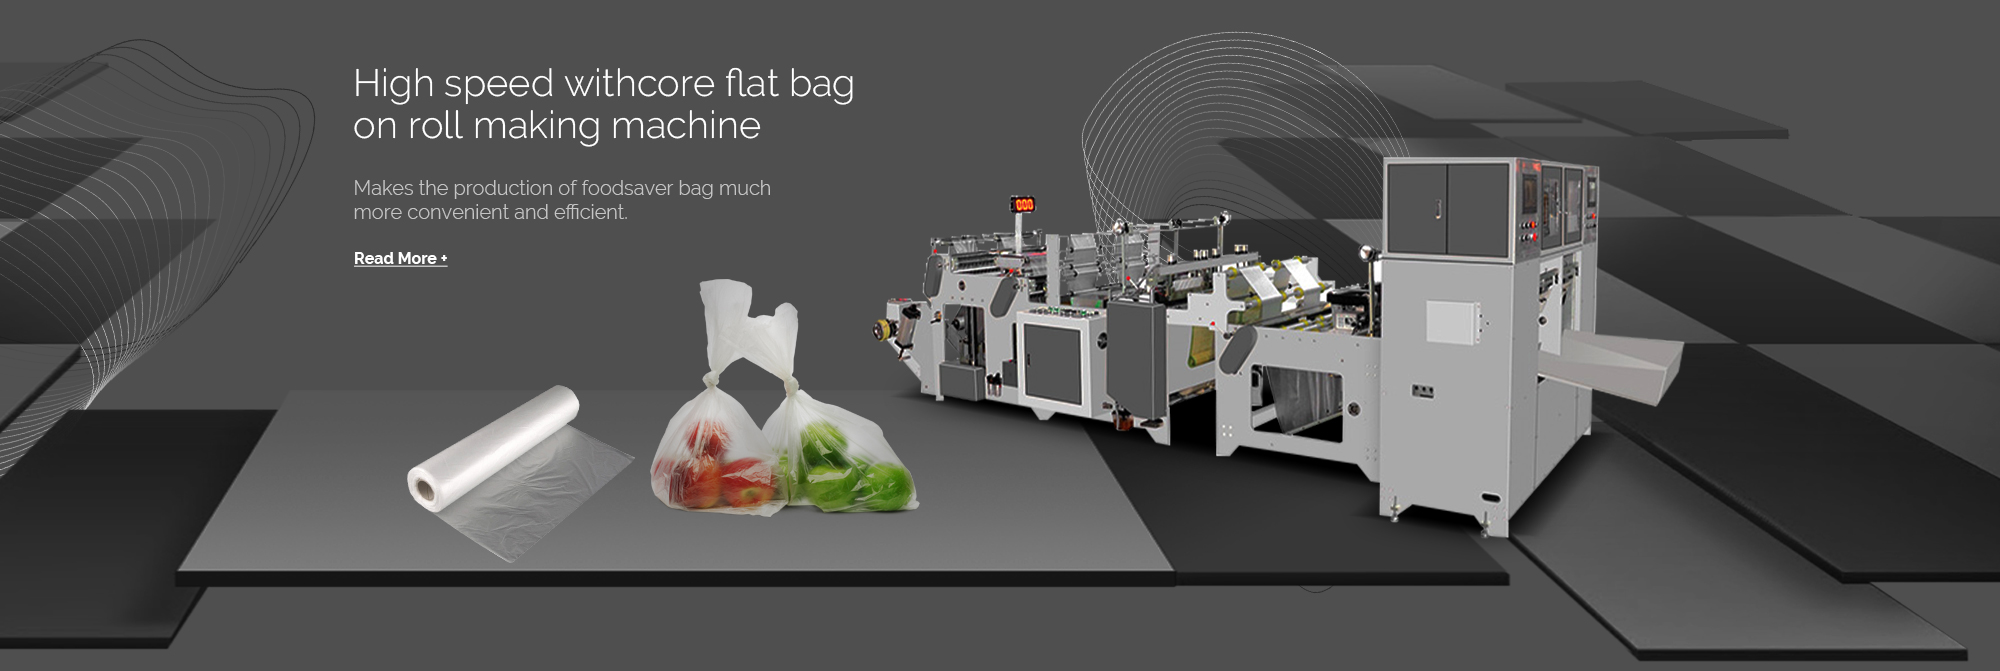 High speed withcore flat bag on roll making machine